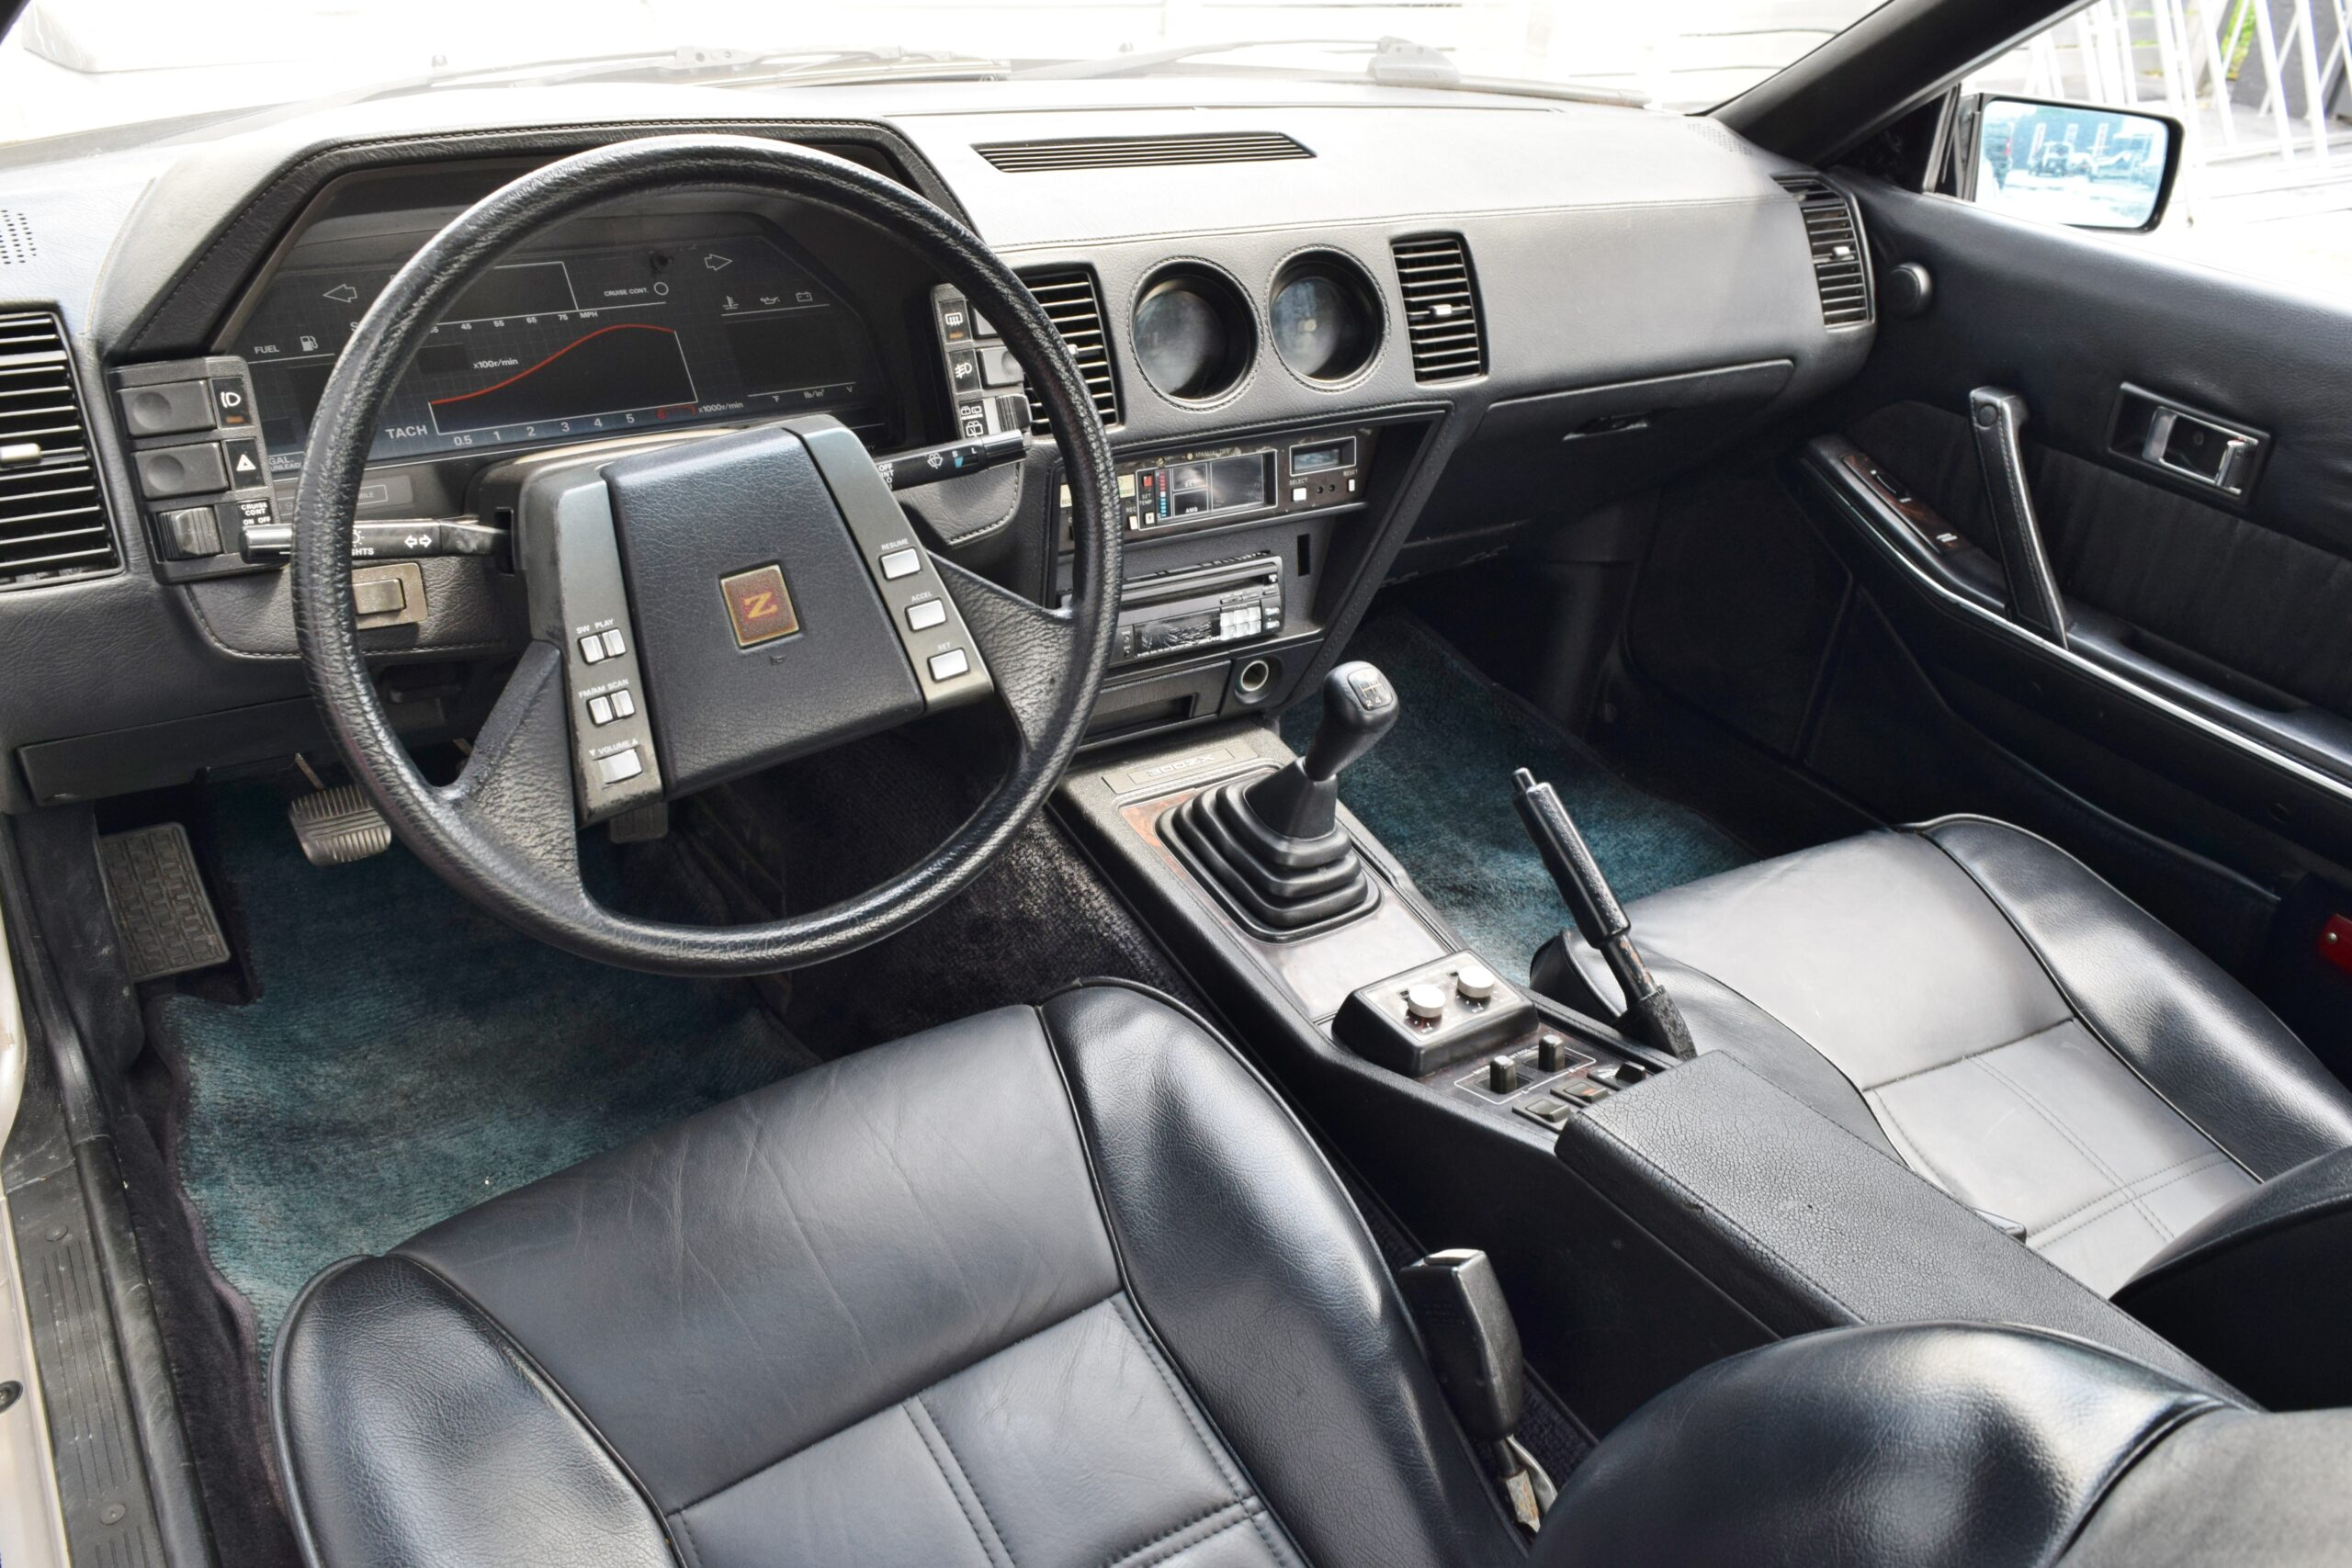 1984 Nissan 300ZX 50th Anniverary Edition Turbocharged-Low Miles- Rare 1 year only -T Tops -5 speed Manual